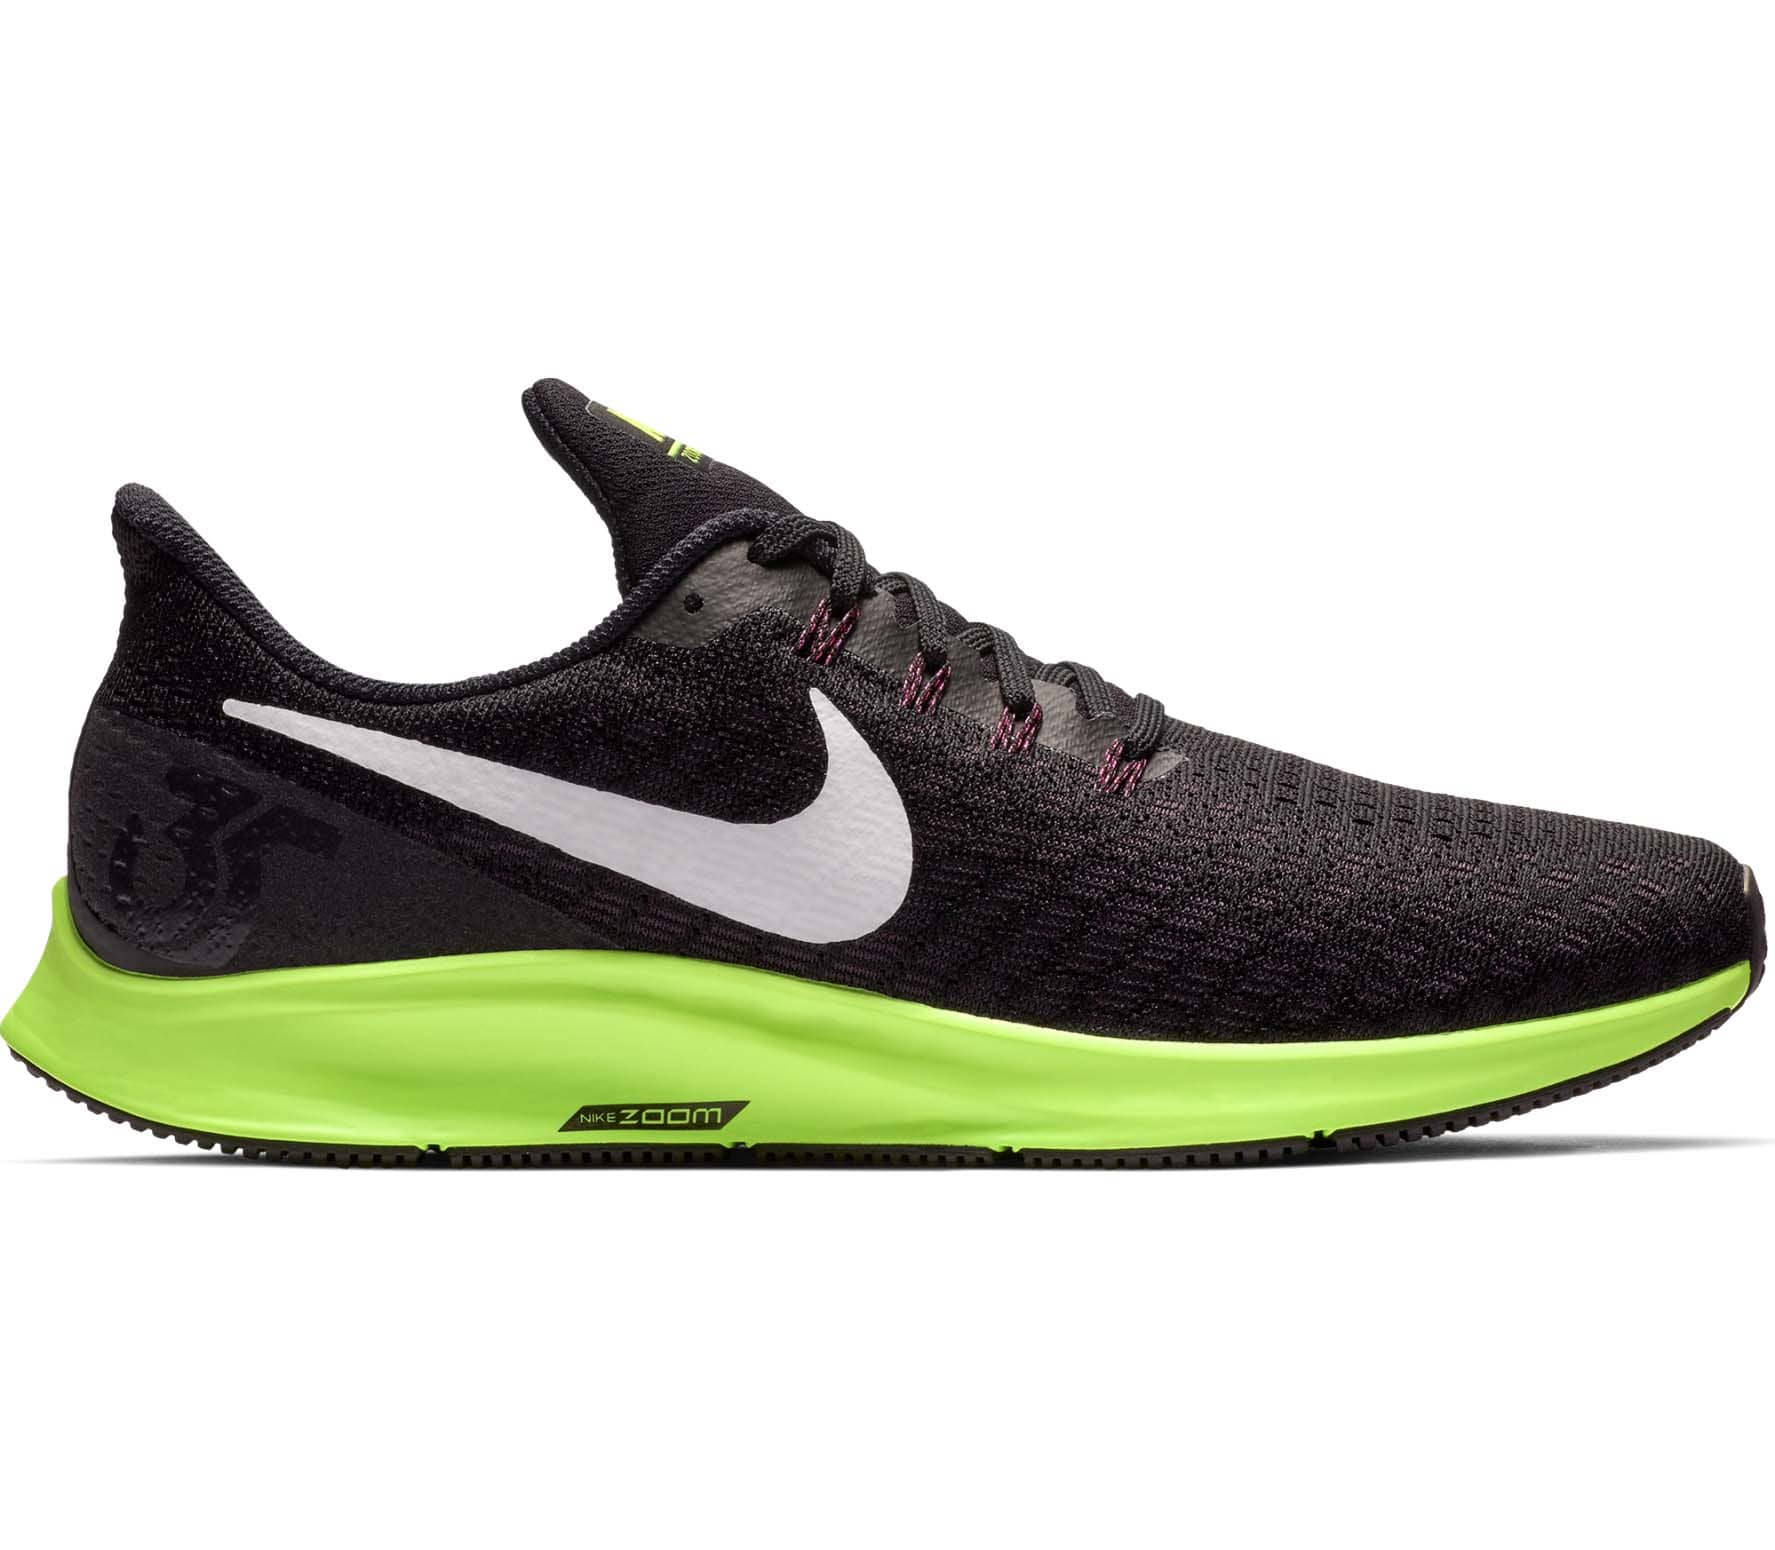 innovative design f4da9 e6cd2 Nike - Air Zoom Pegasus 35 Uomo scarpe da corsa (nero verde)